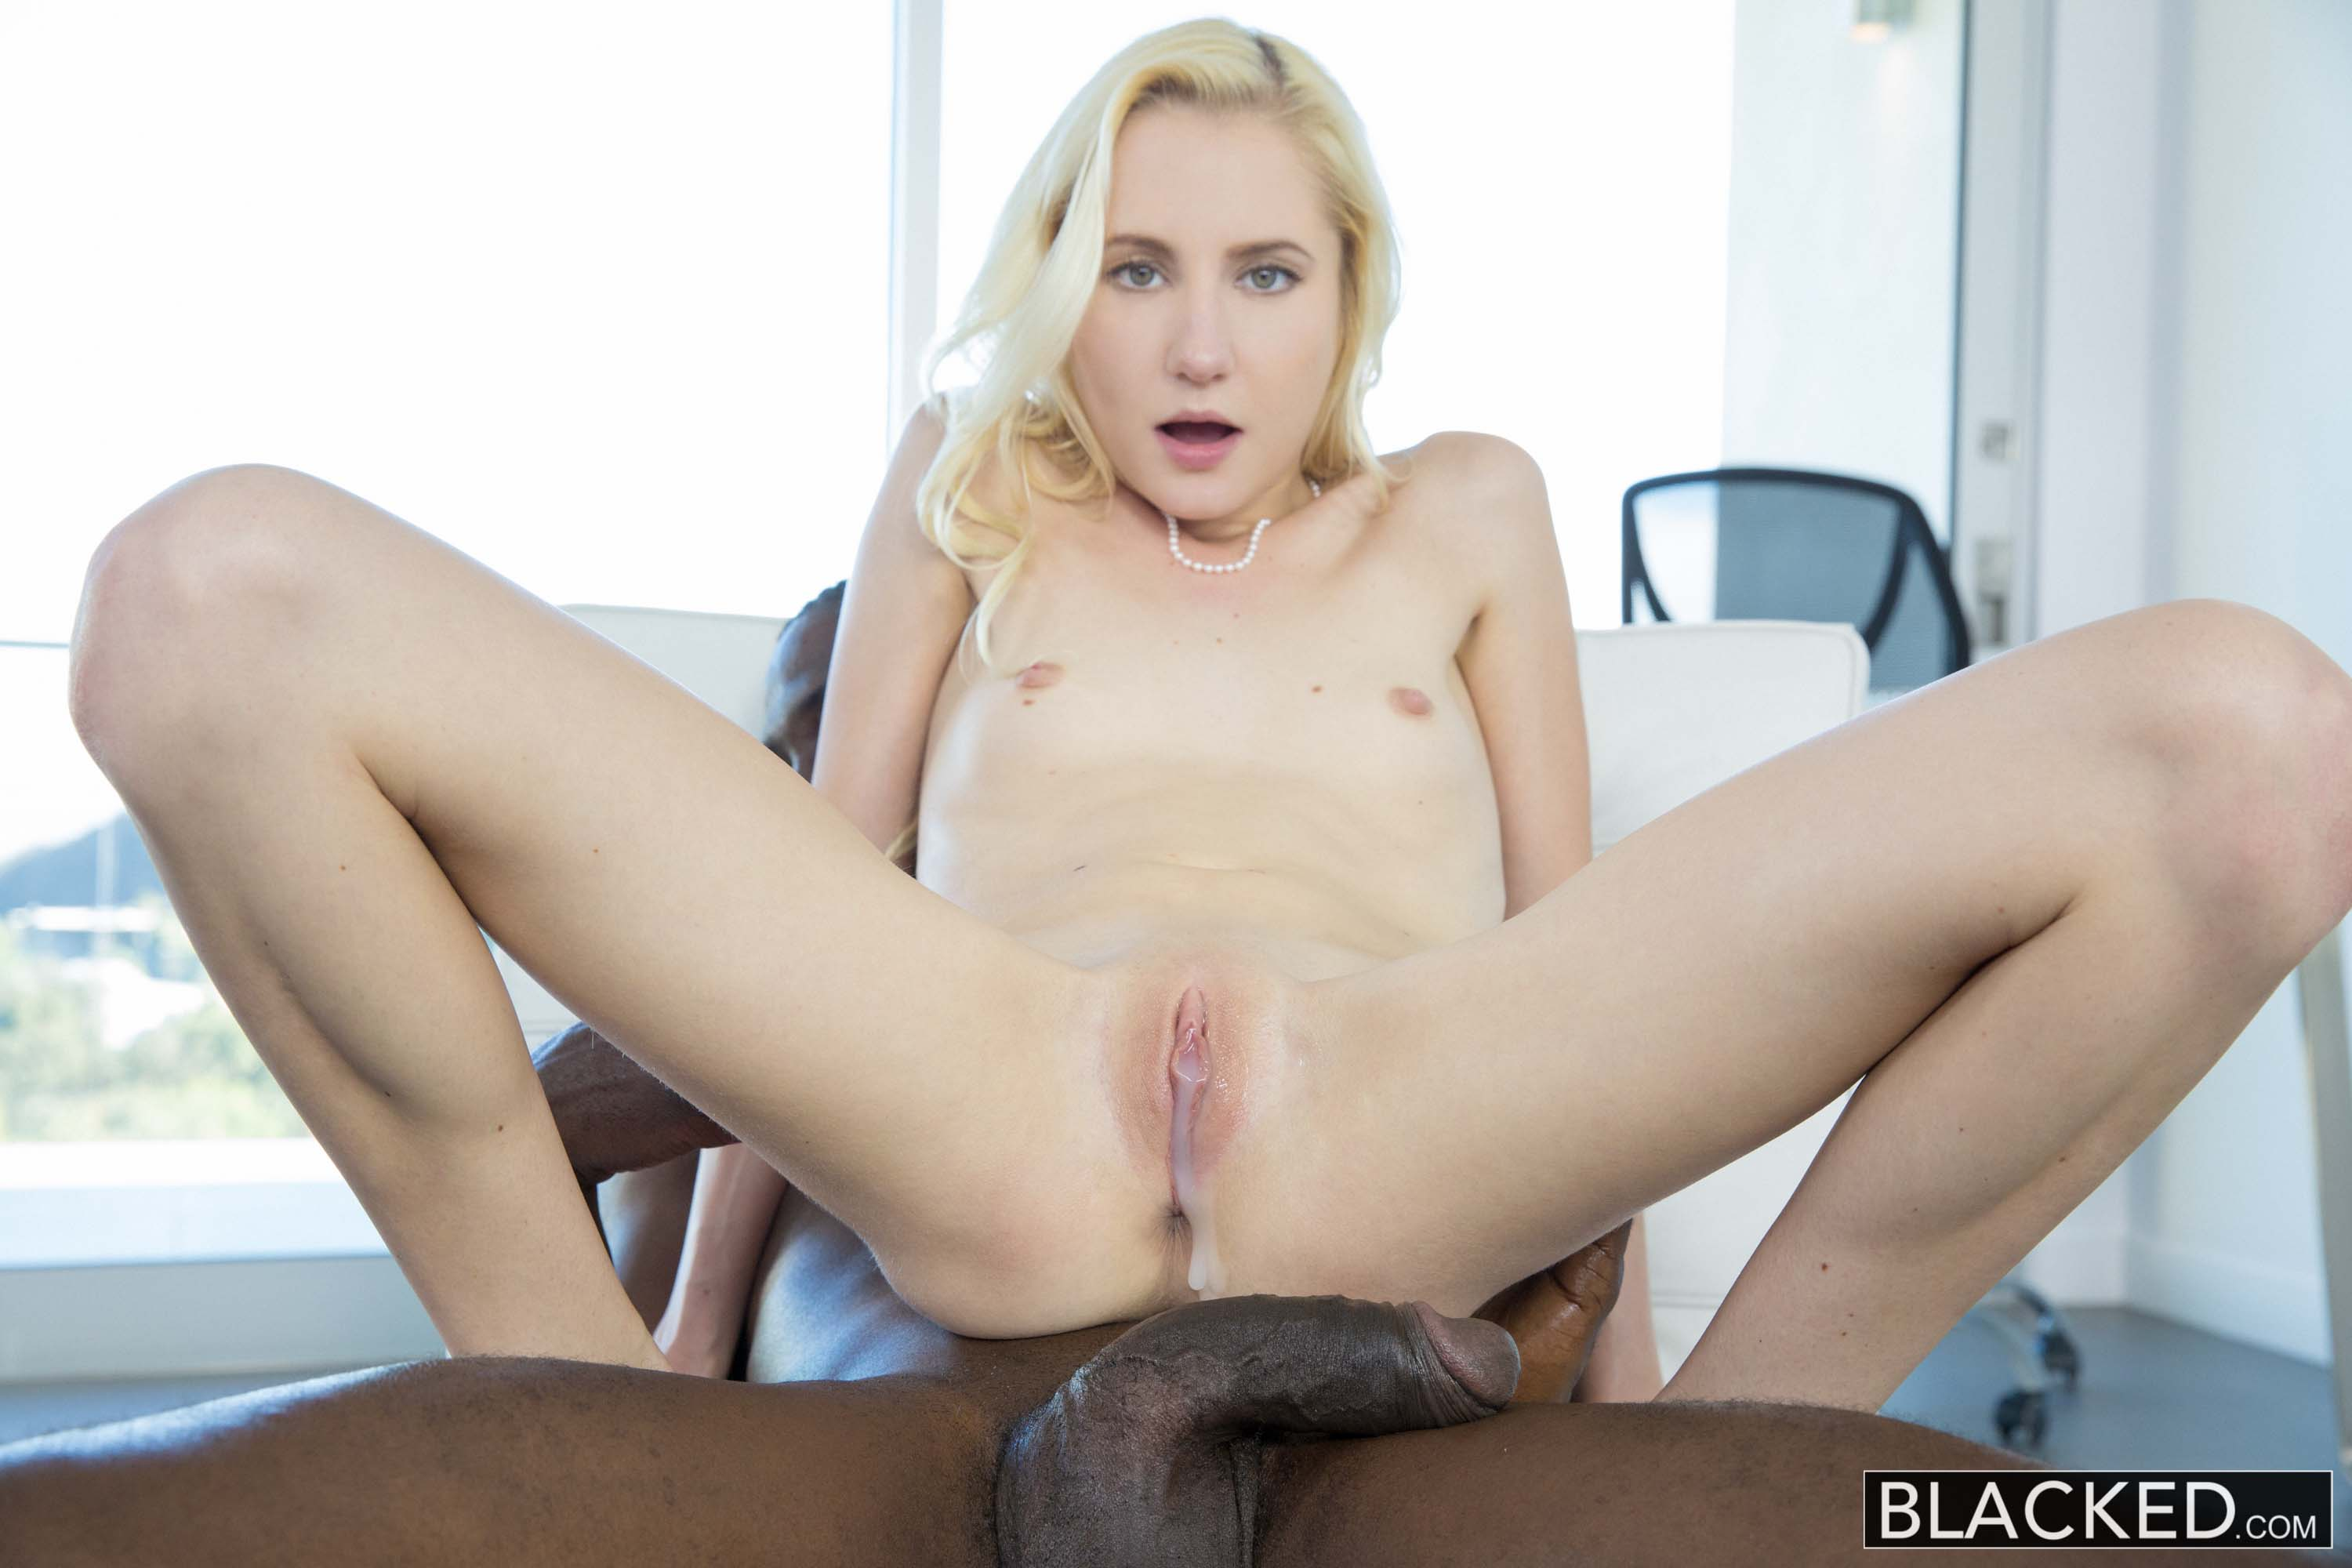 Amateur fills her once tight asshole with a giant dildo 7